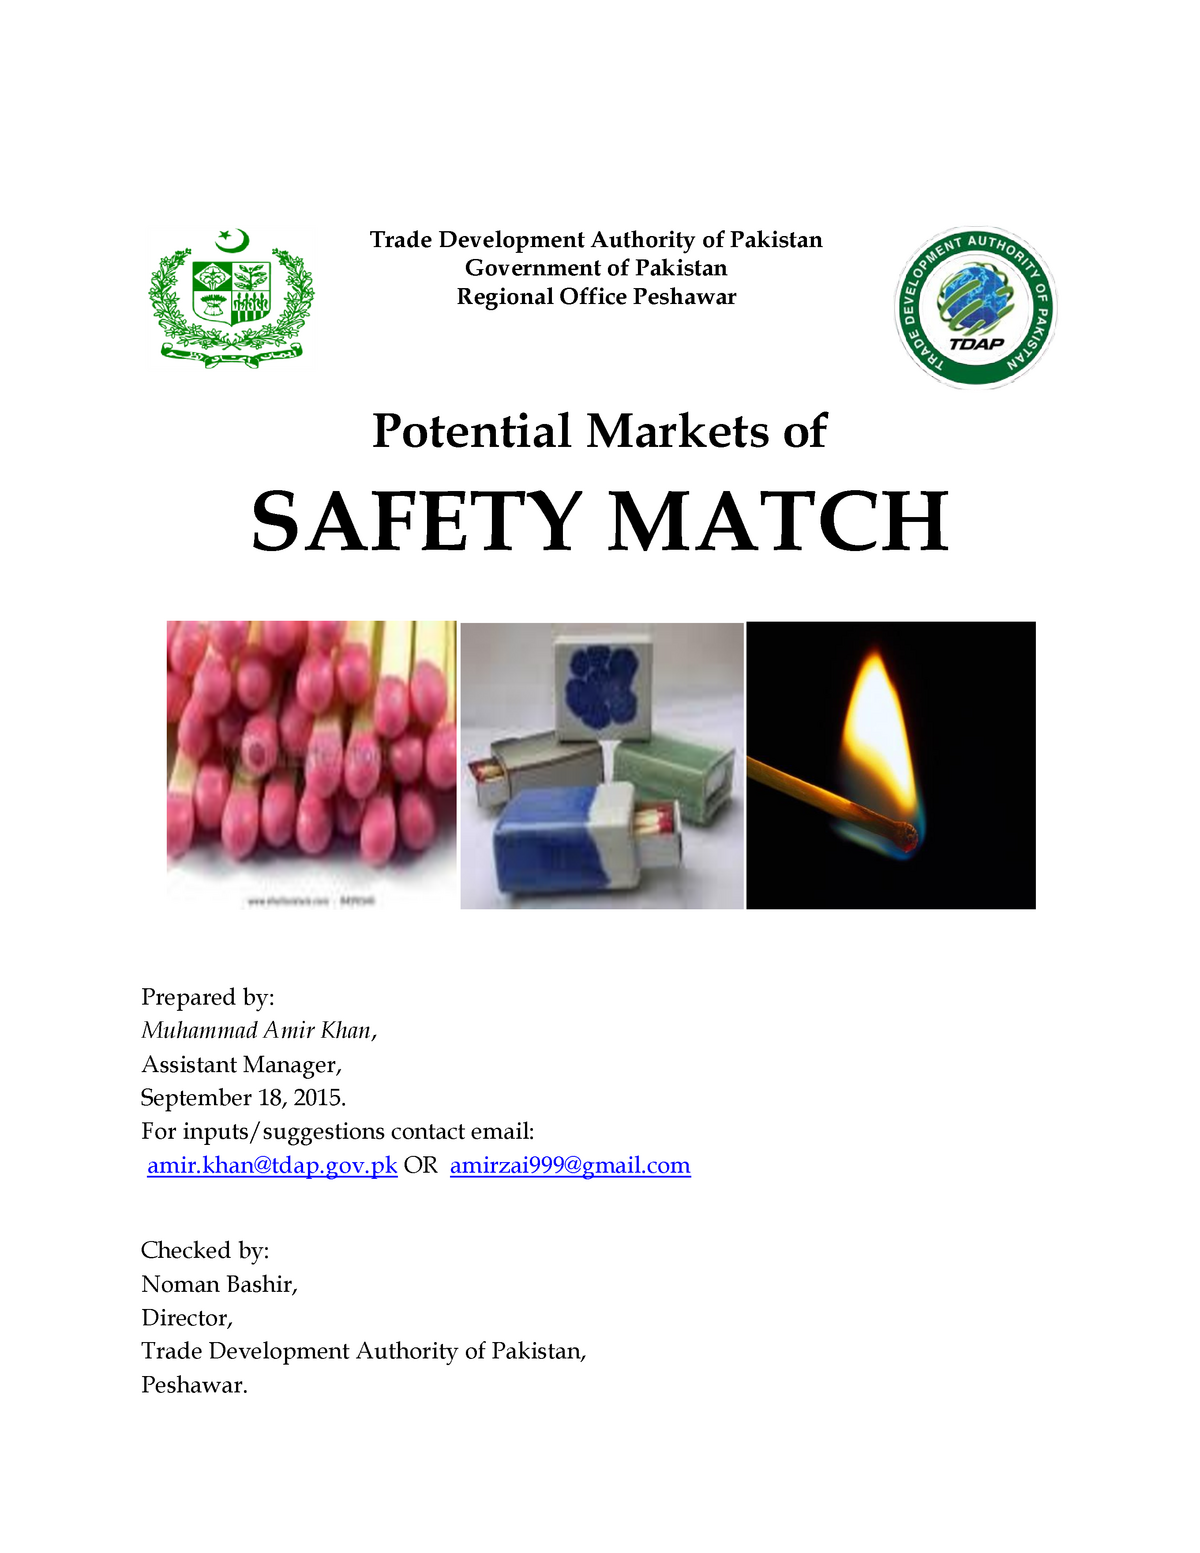 Report on Safety Match - International relations 454 - StuDocu